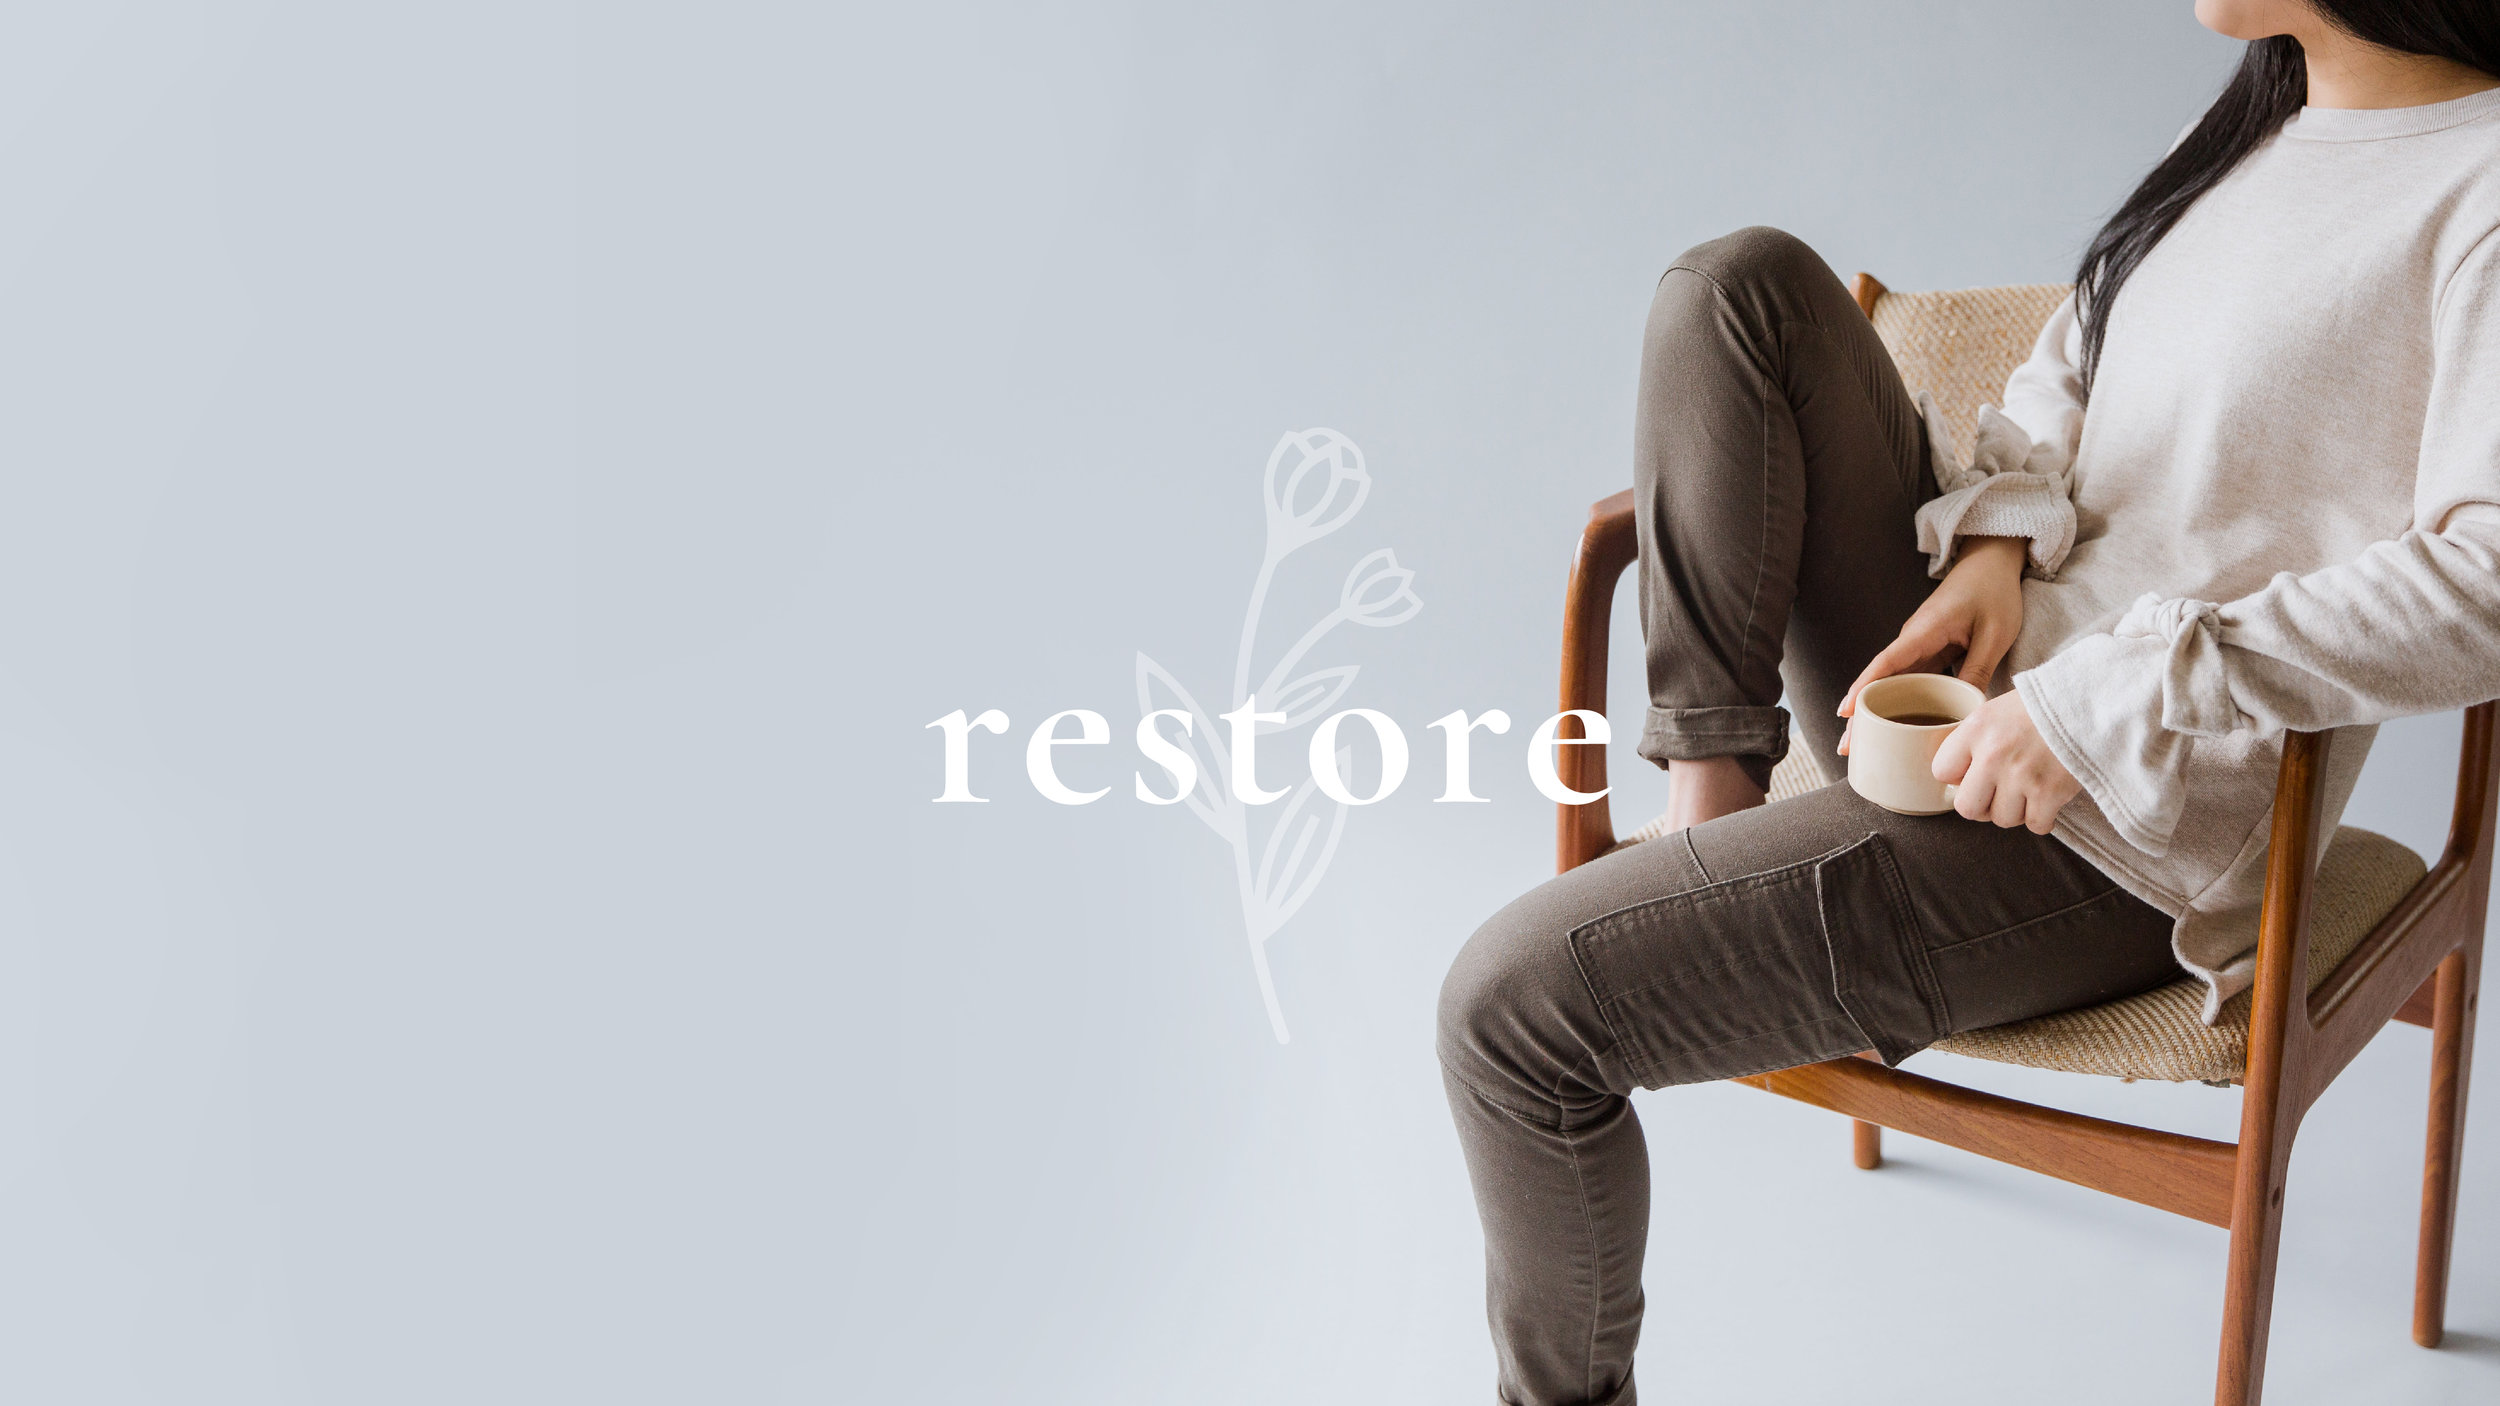 Restore series dives deeper into Psalm 23 and what it means to restore our souls through God's presence and finding rest in Him.